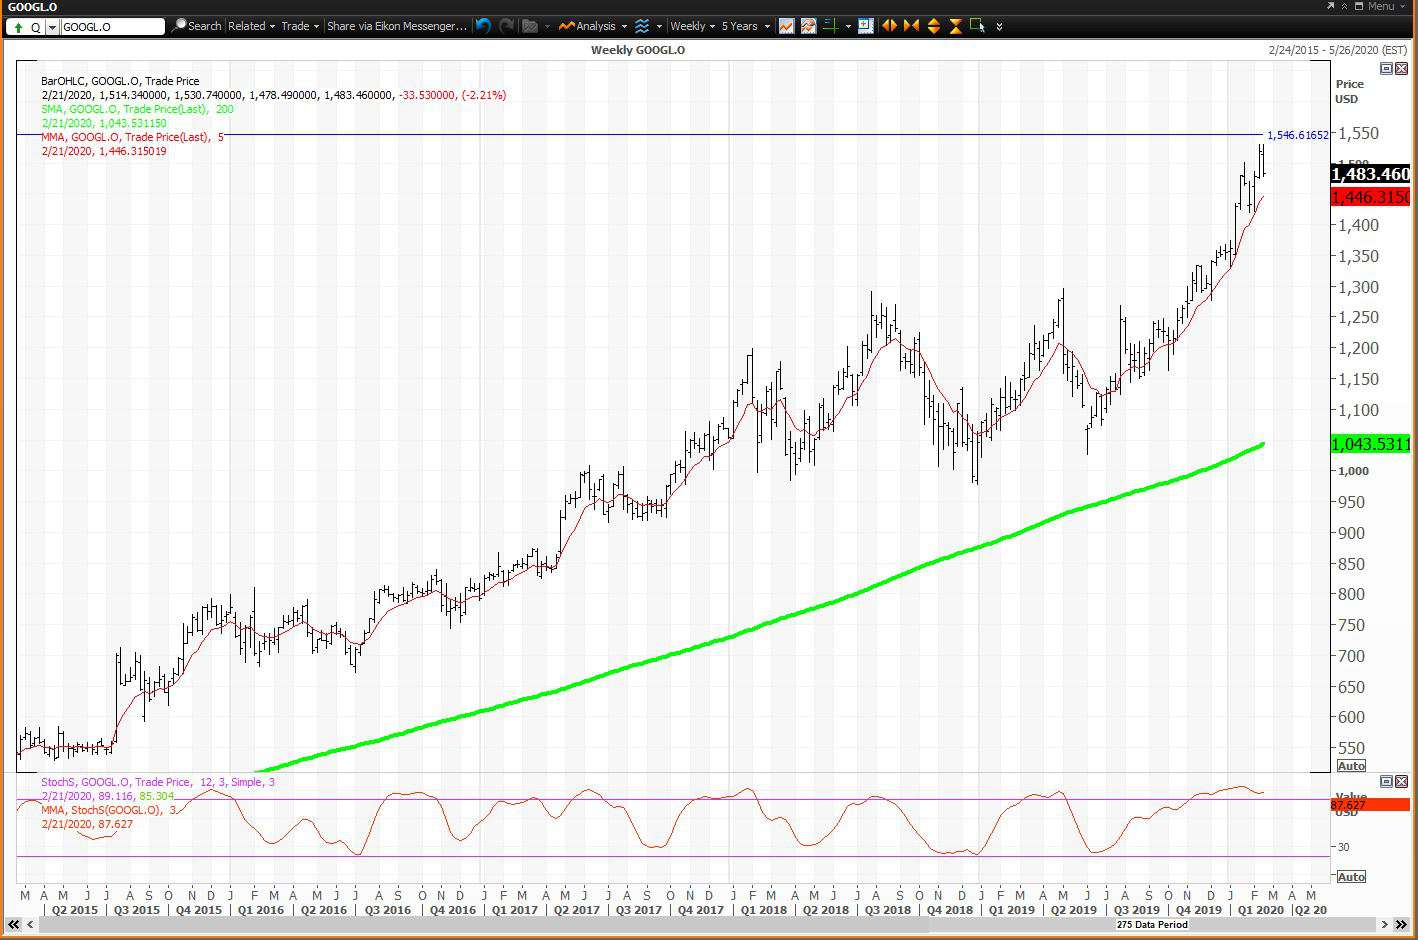 Weekly chart showing the share price performance of Alphabet Inc. (GOOGL)